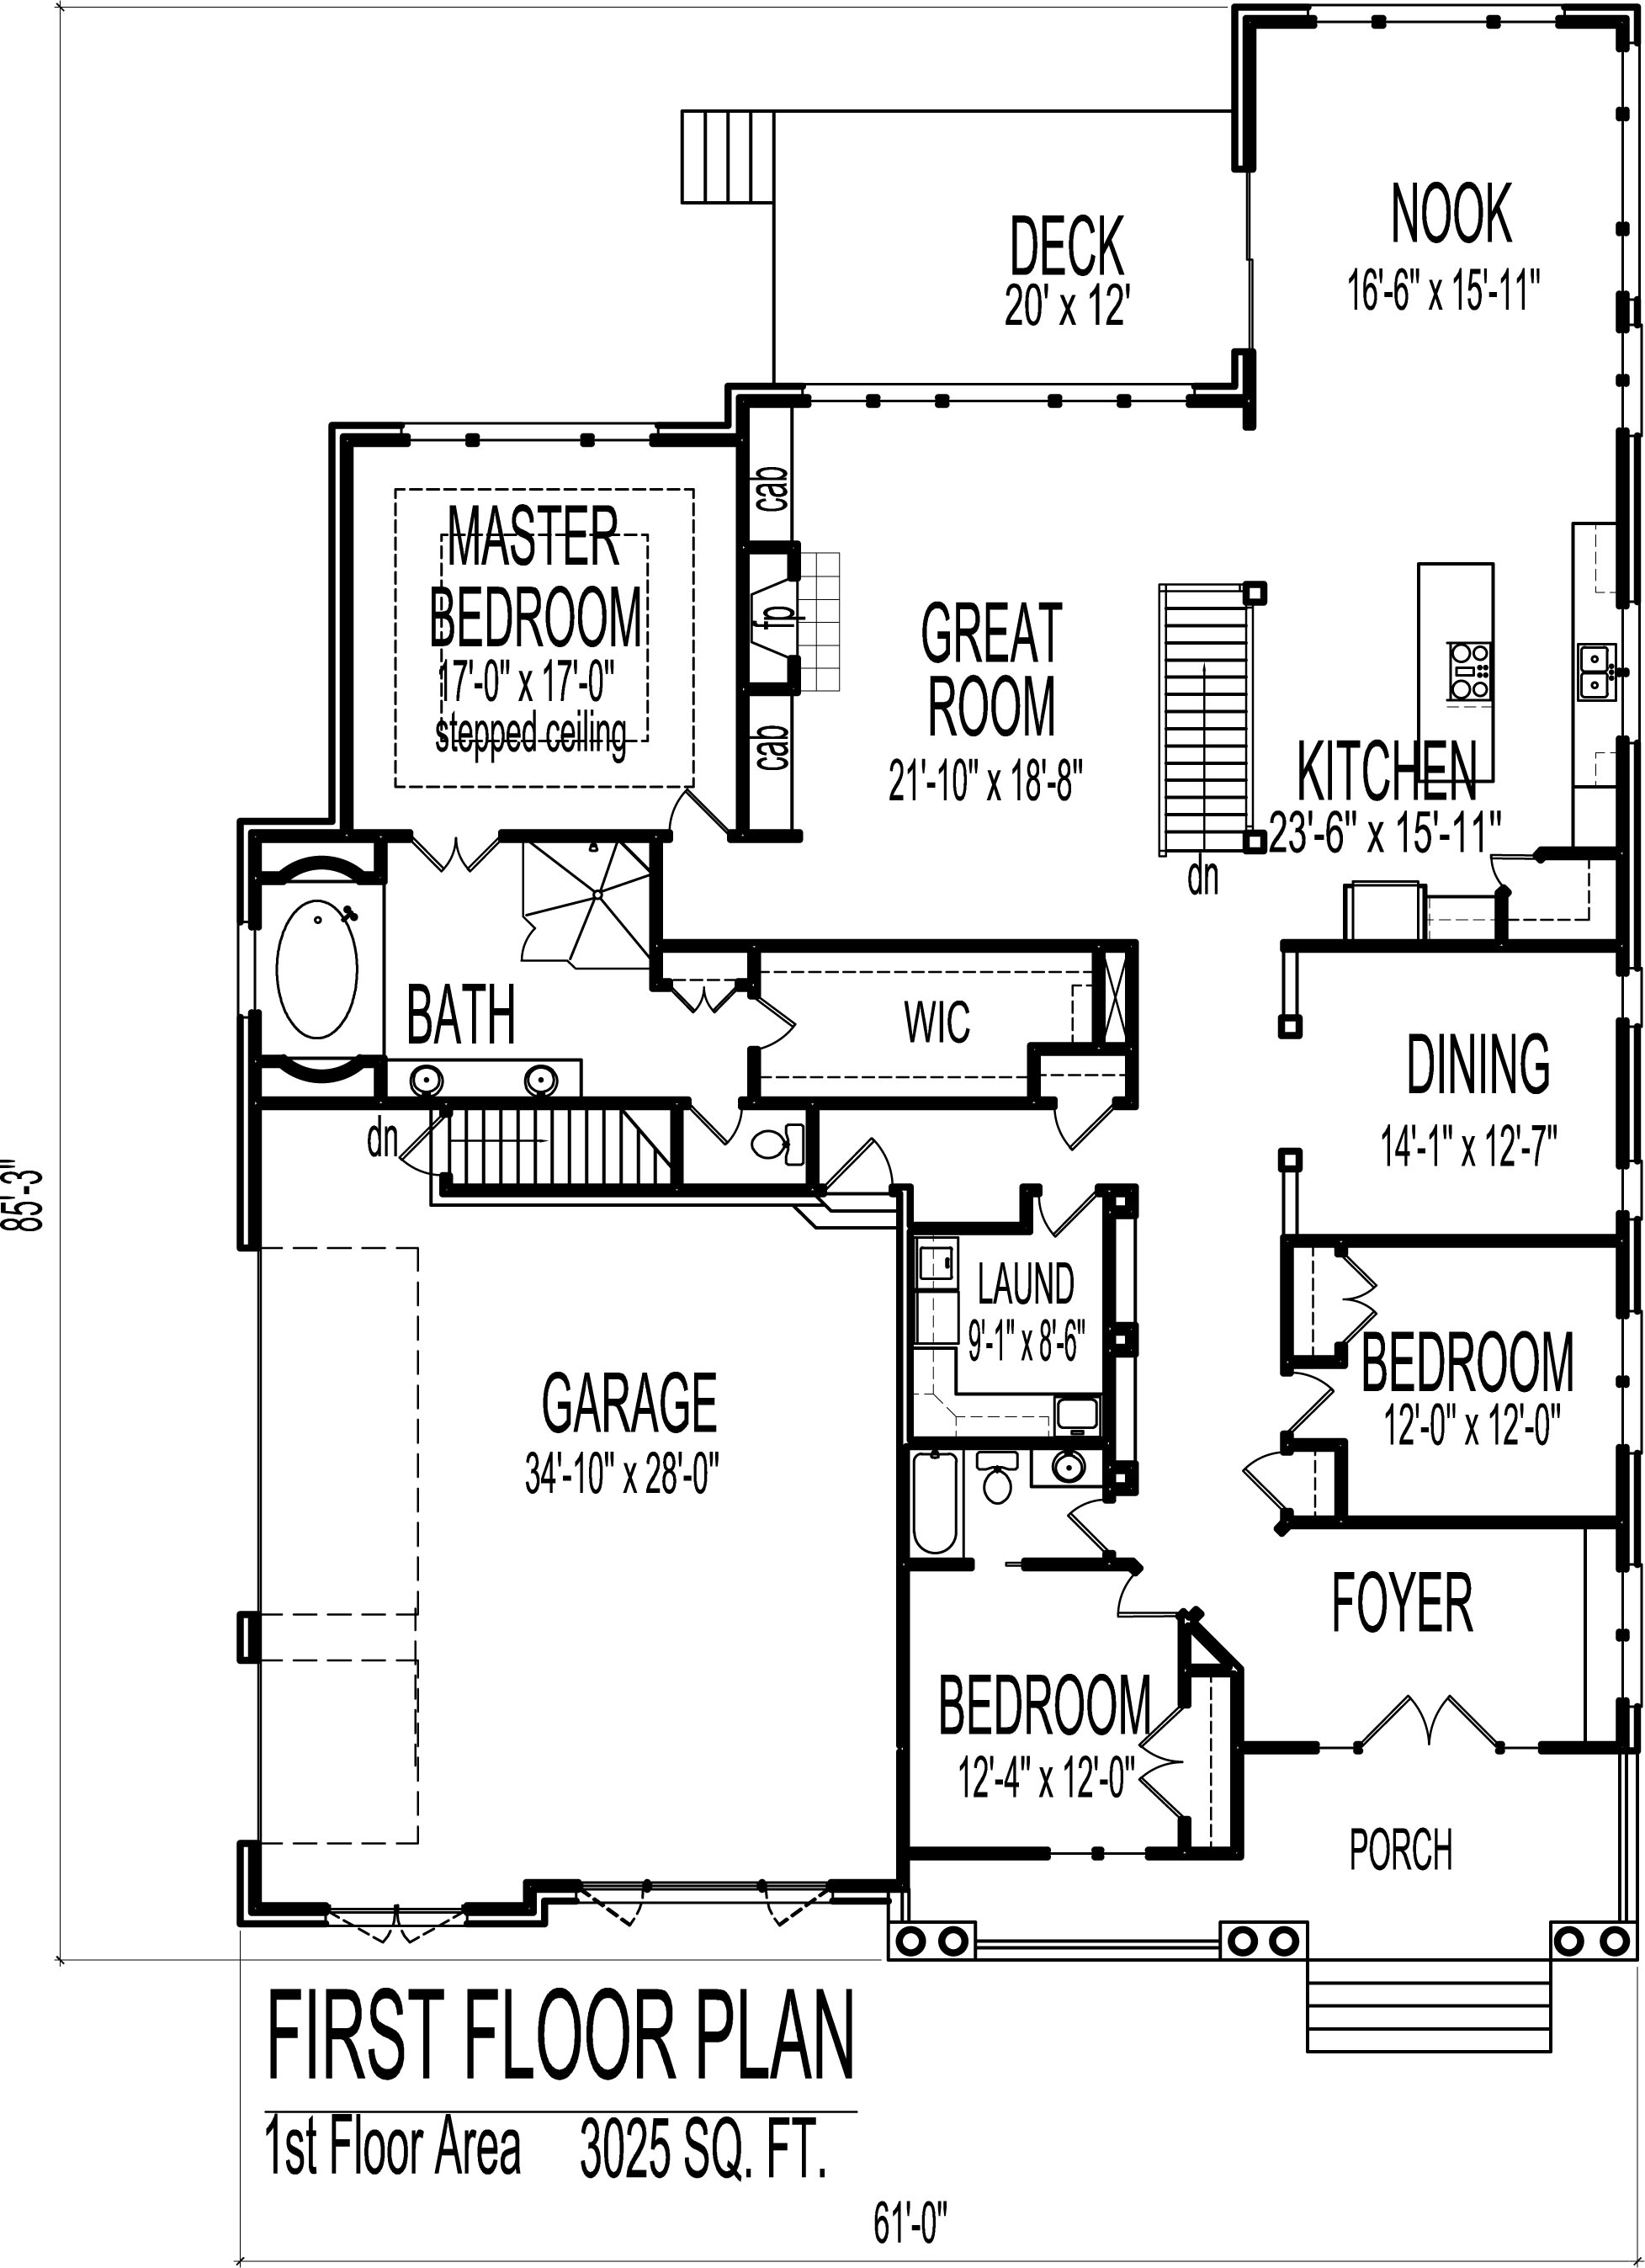 Autocad House Drawing At Getdrawings